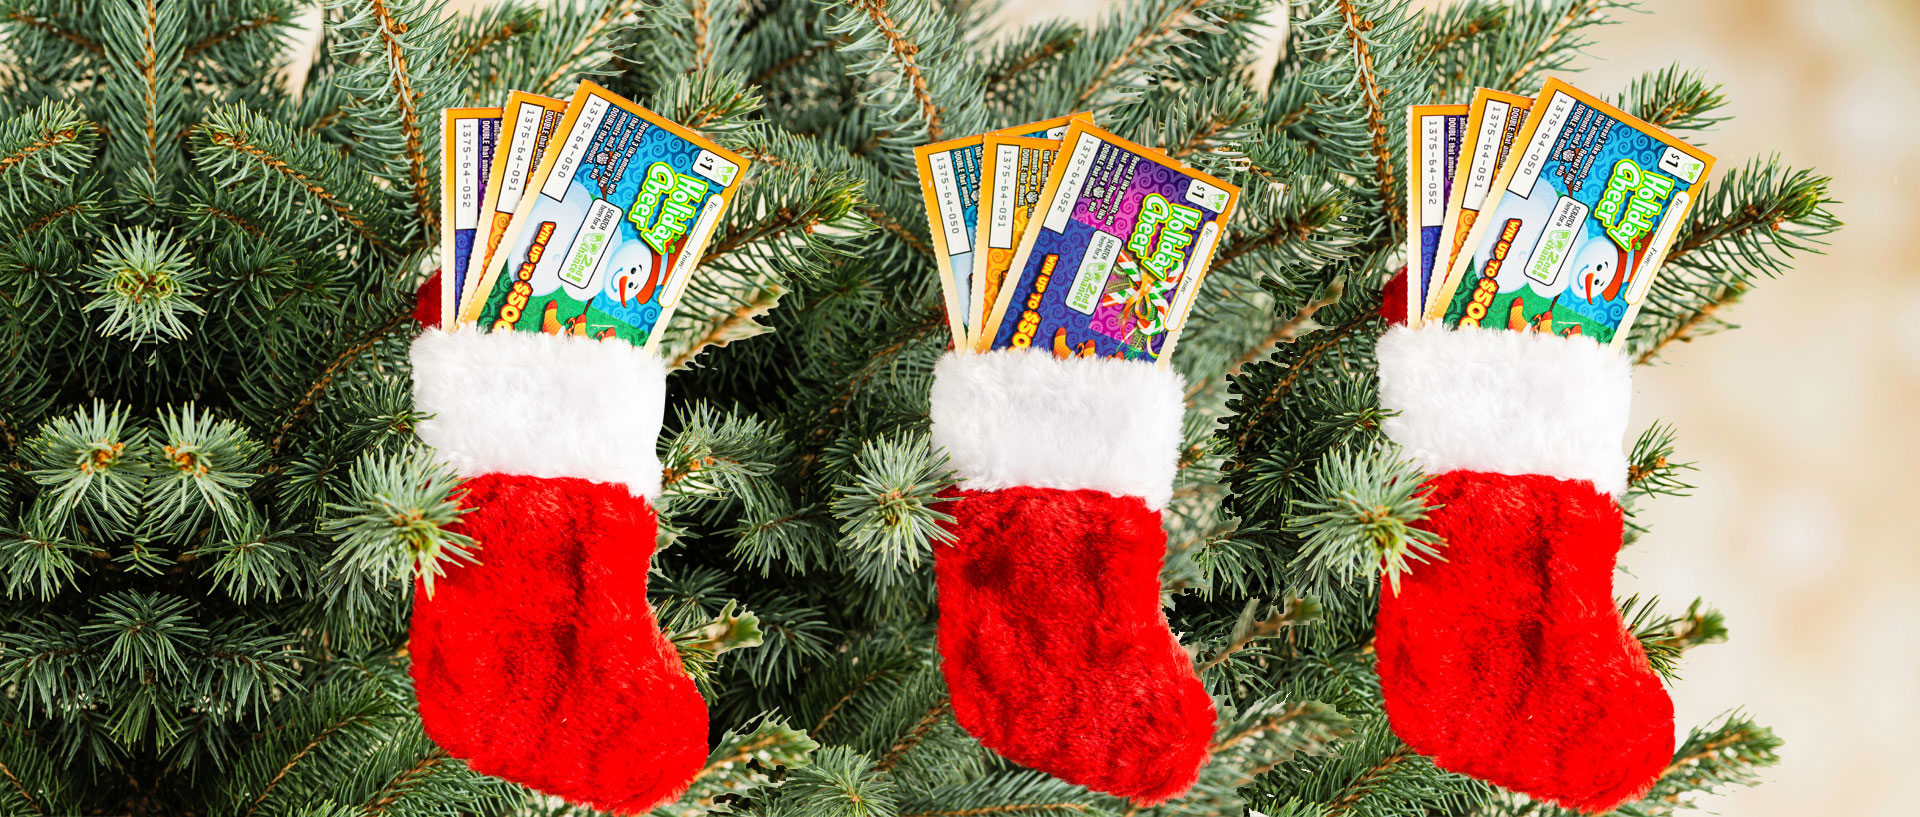 Are Lottery Tickets a Good Present? Consumer Reports #C60505